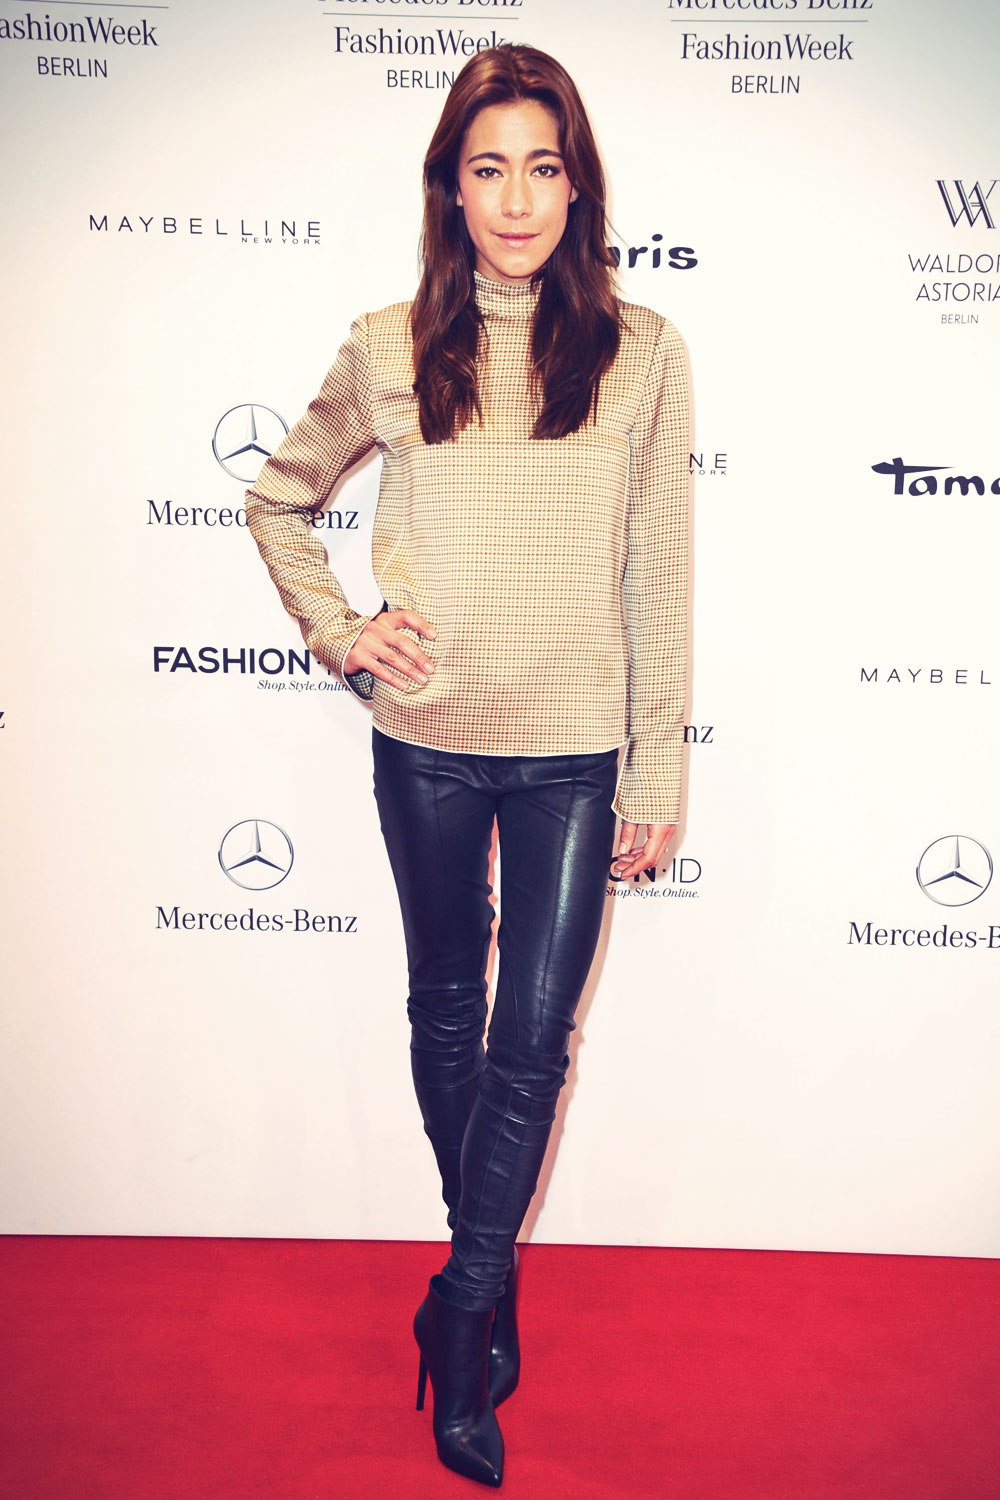 Angela Gessmann attends Mercedes-Benz Fashion Week #2